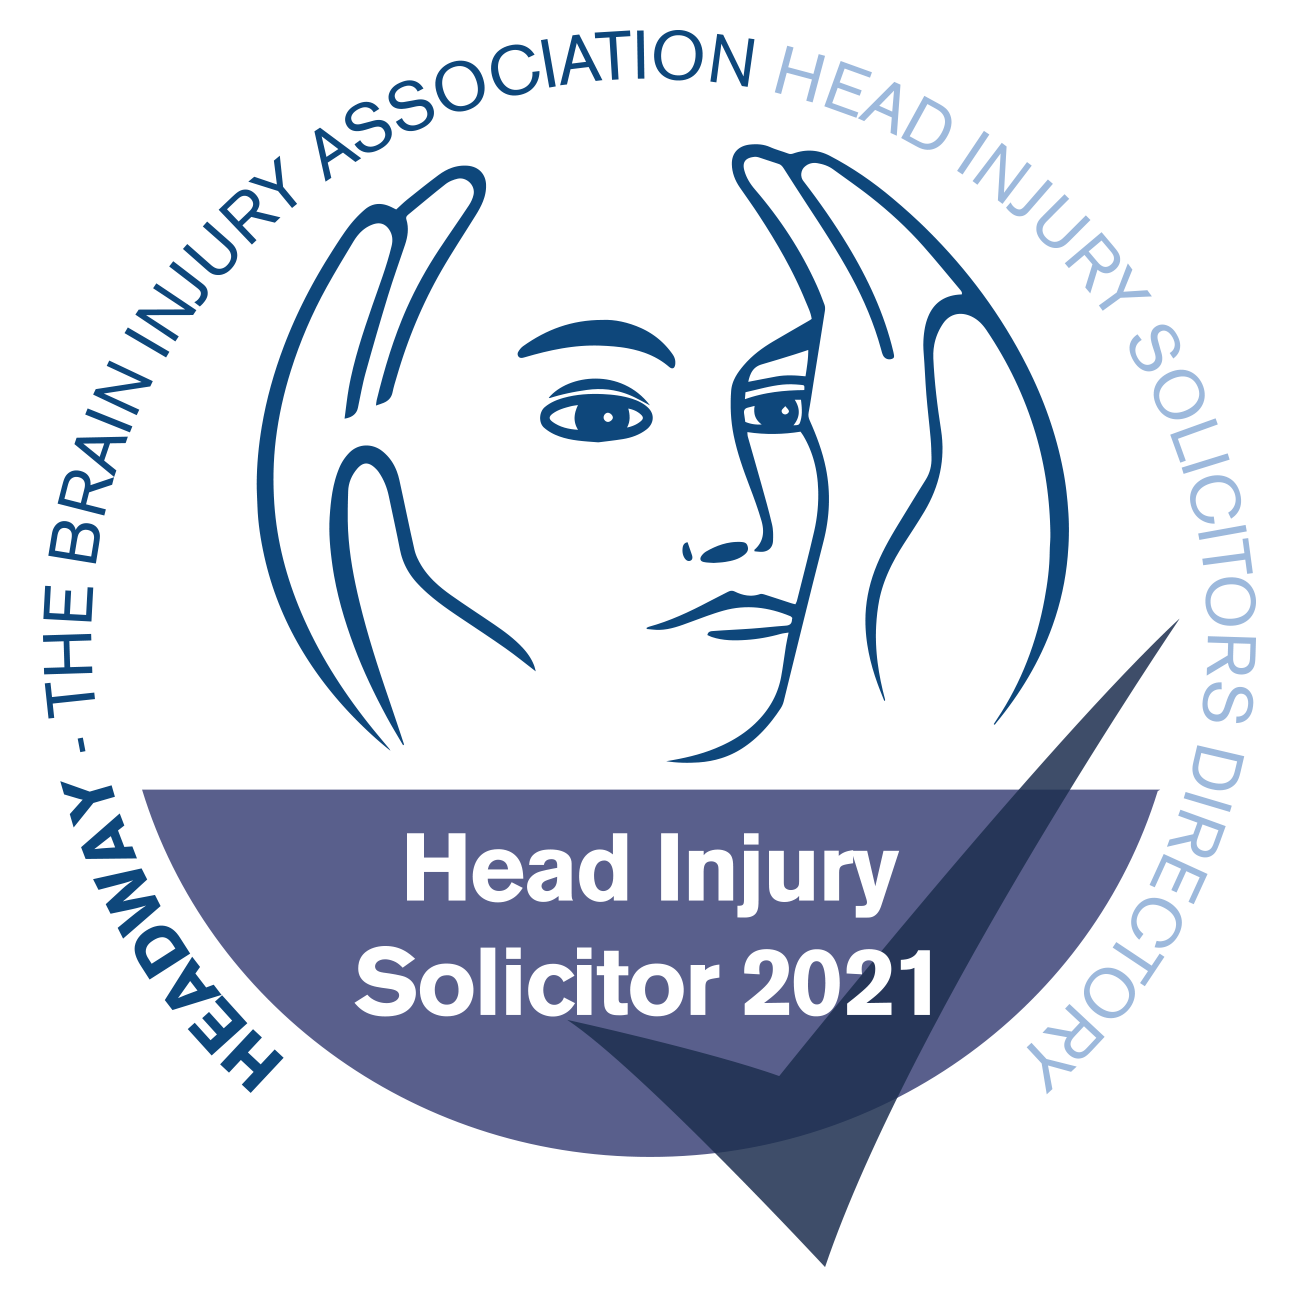 Headway Head Injury Solicitor 2020